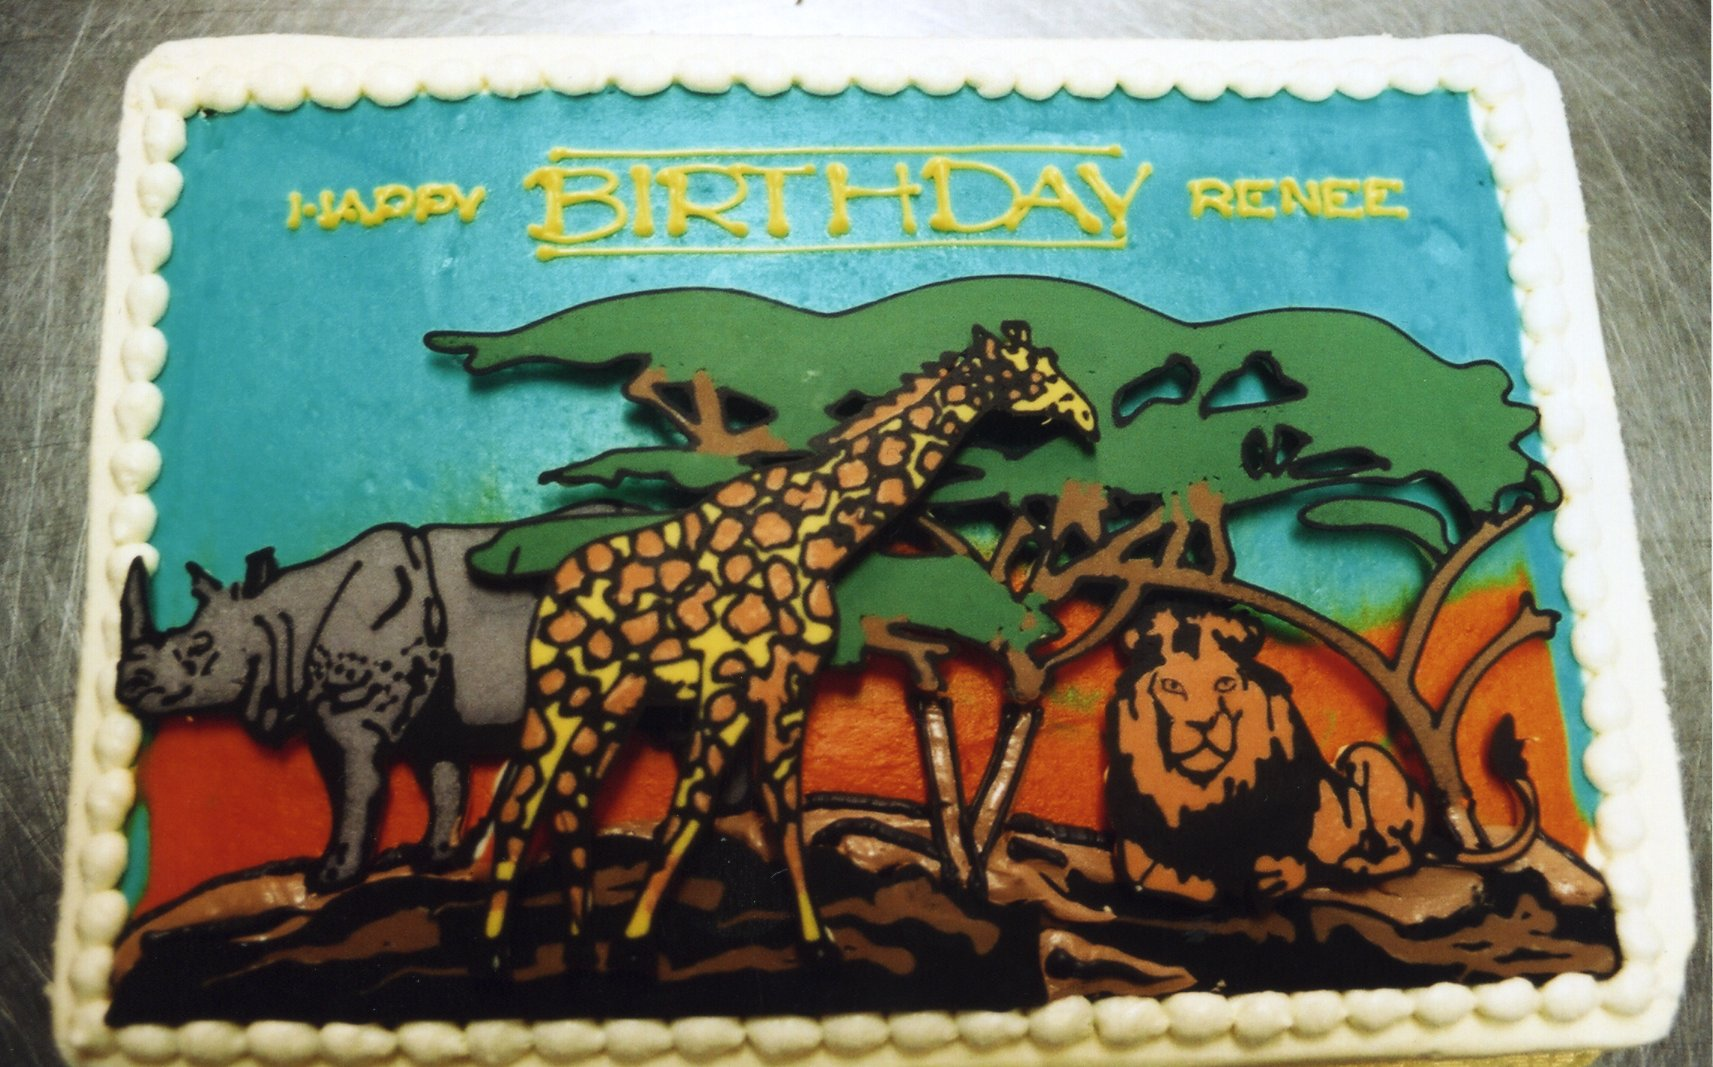 Serengeti birthday cake